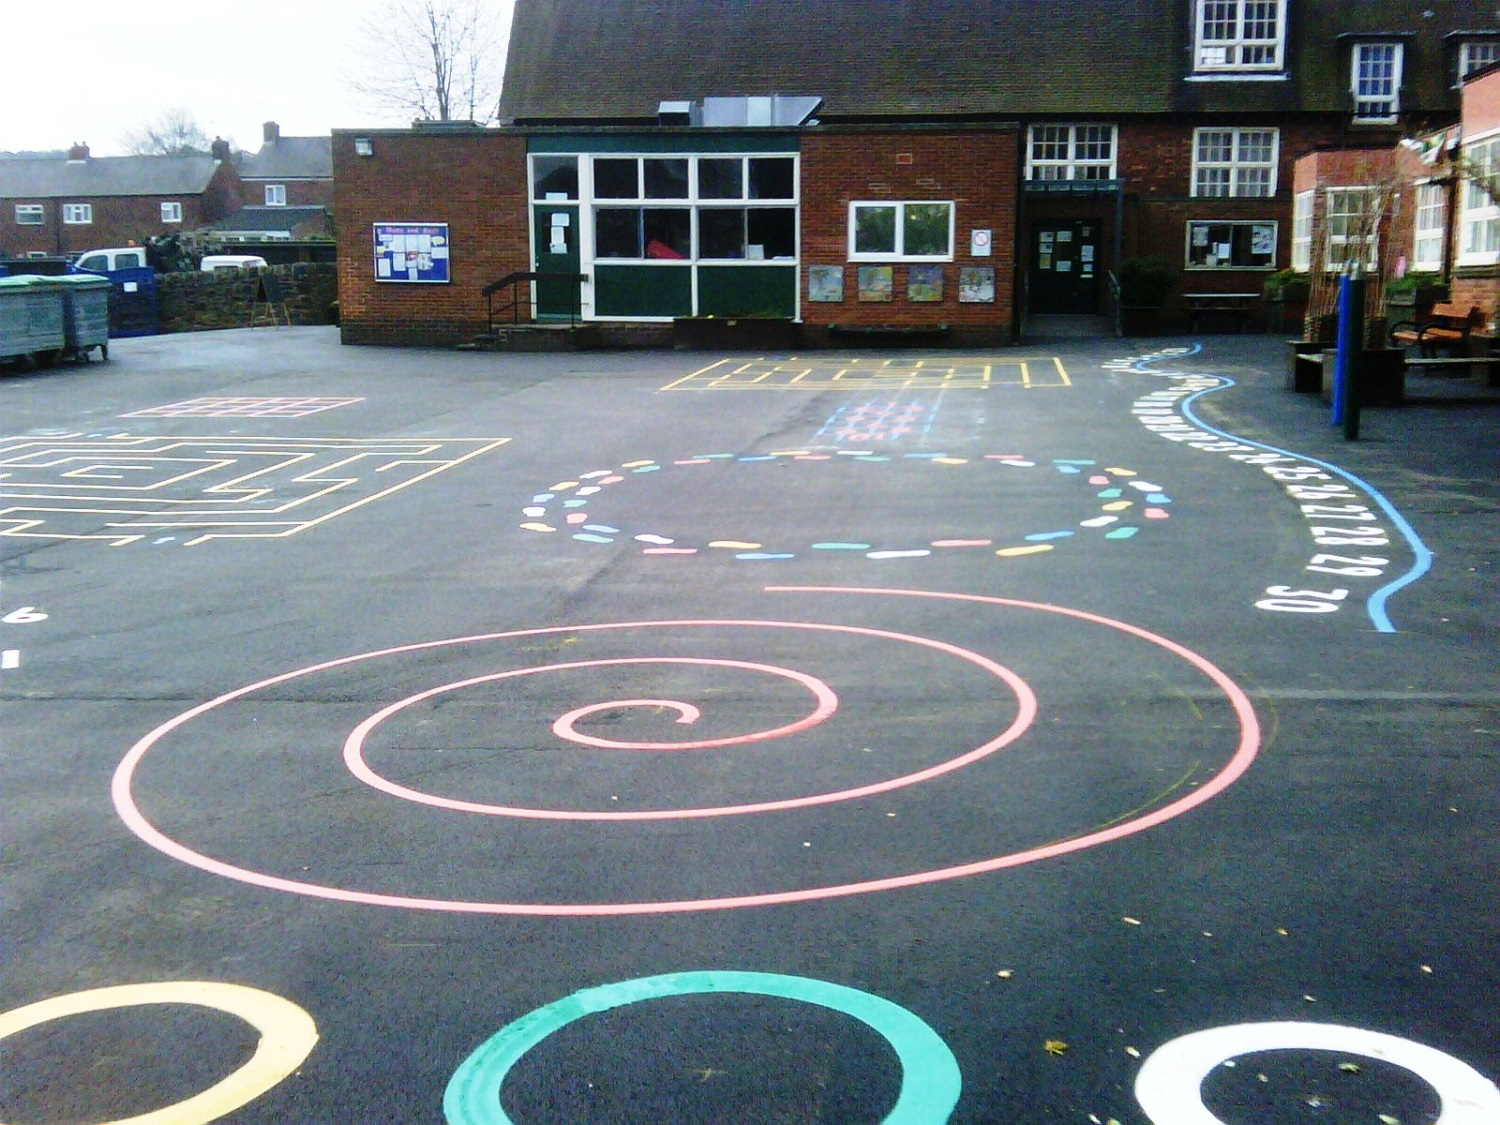 P1 Playground Tarmac Surfacing & Playground Markings at Dronfield Infants School in Dronfield